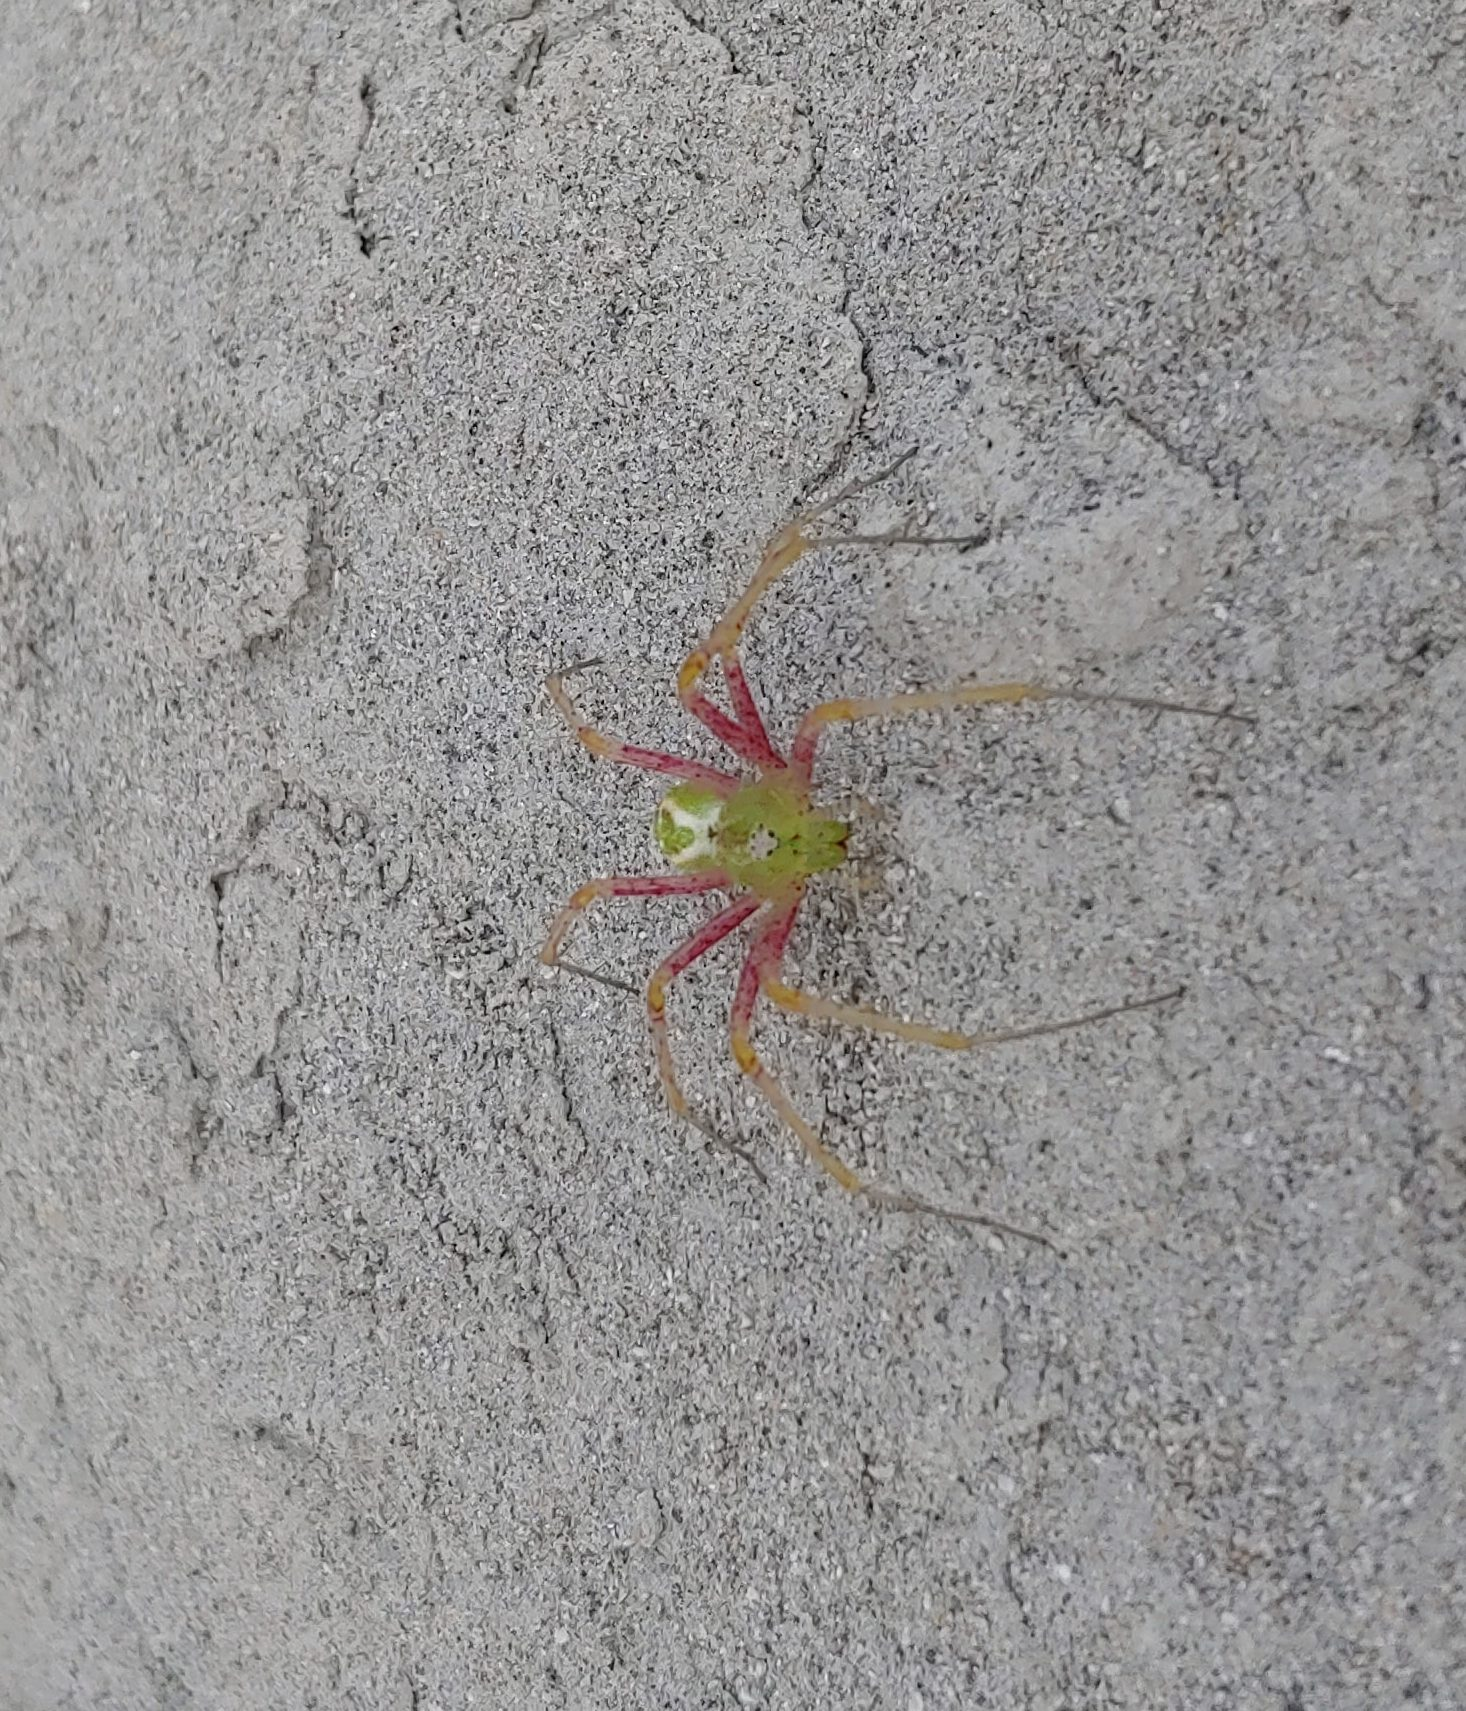 Picture of Peucetia viridans (Green Lynx Spider) - Dorsal